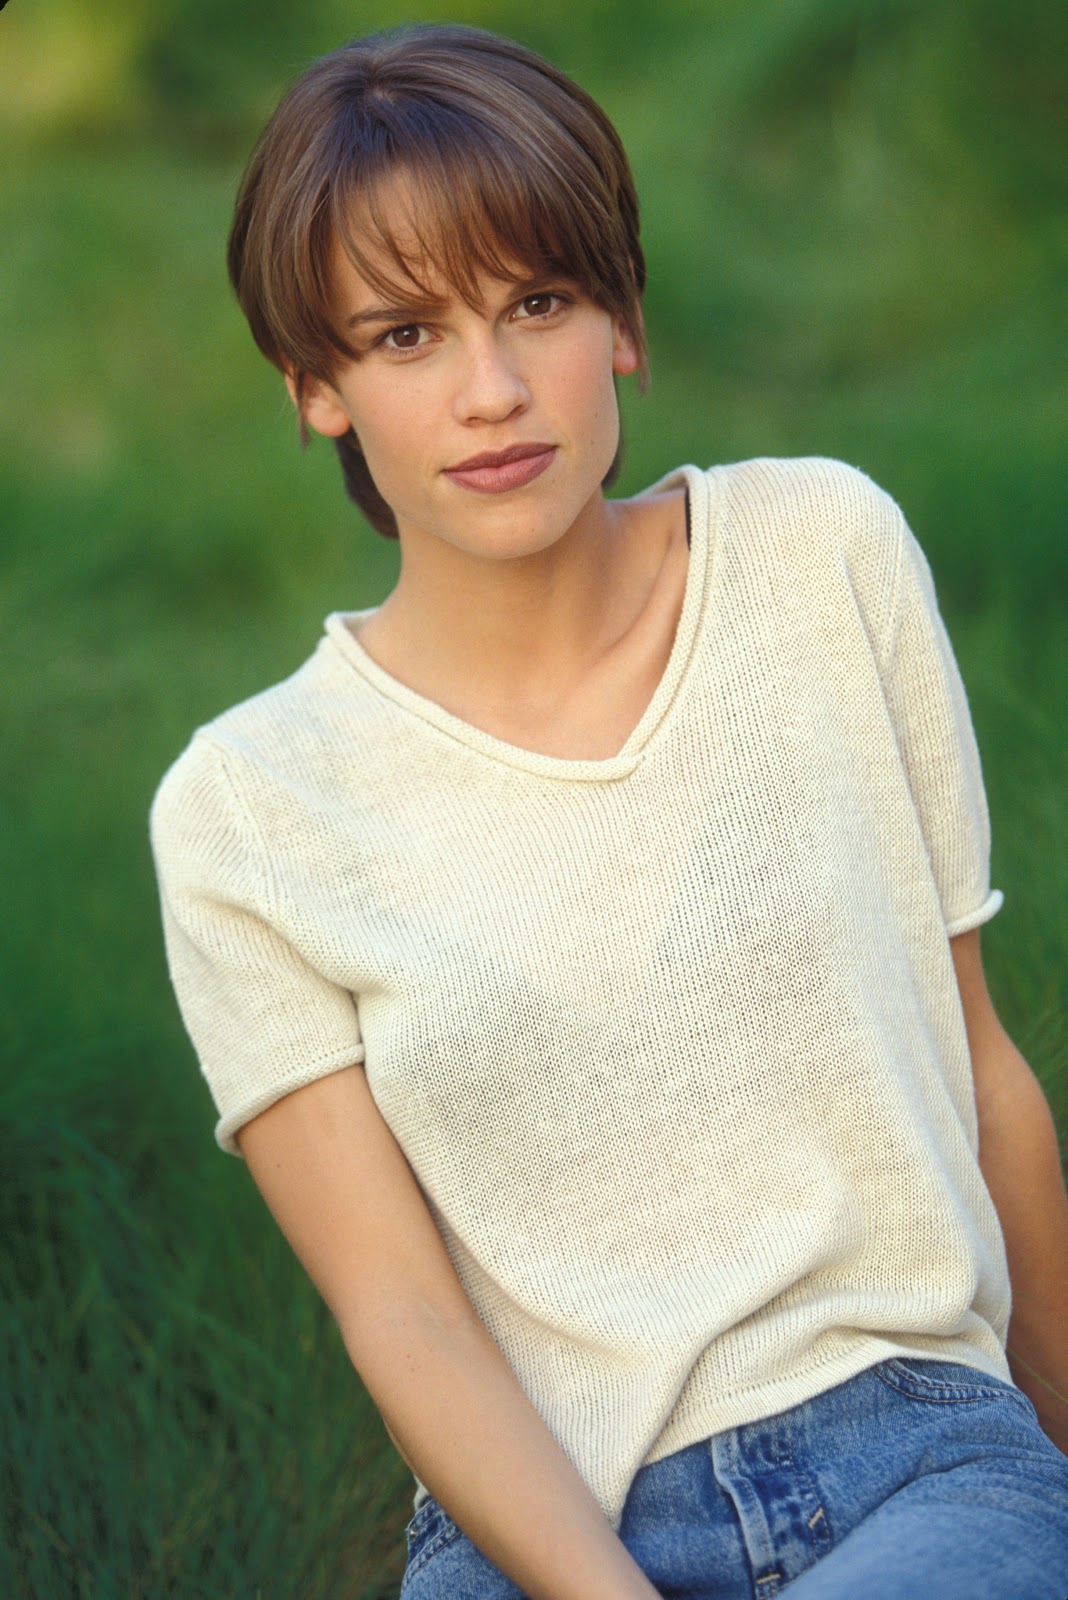 Hilary Swank As Young Girl Photo 3